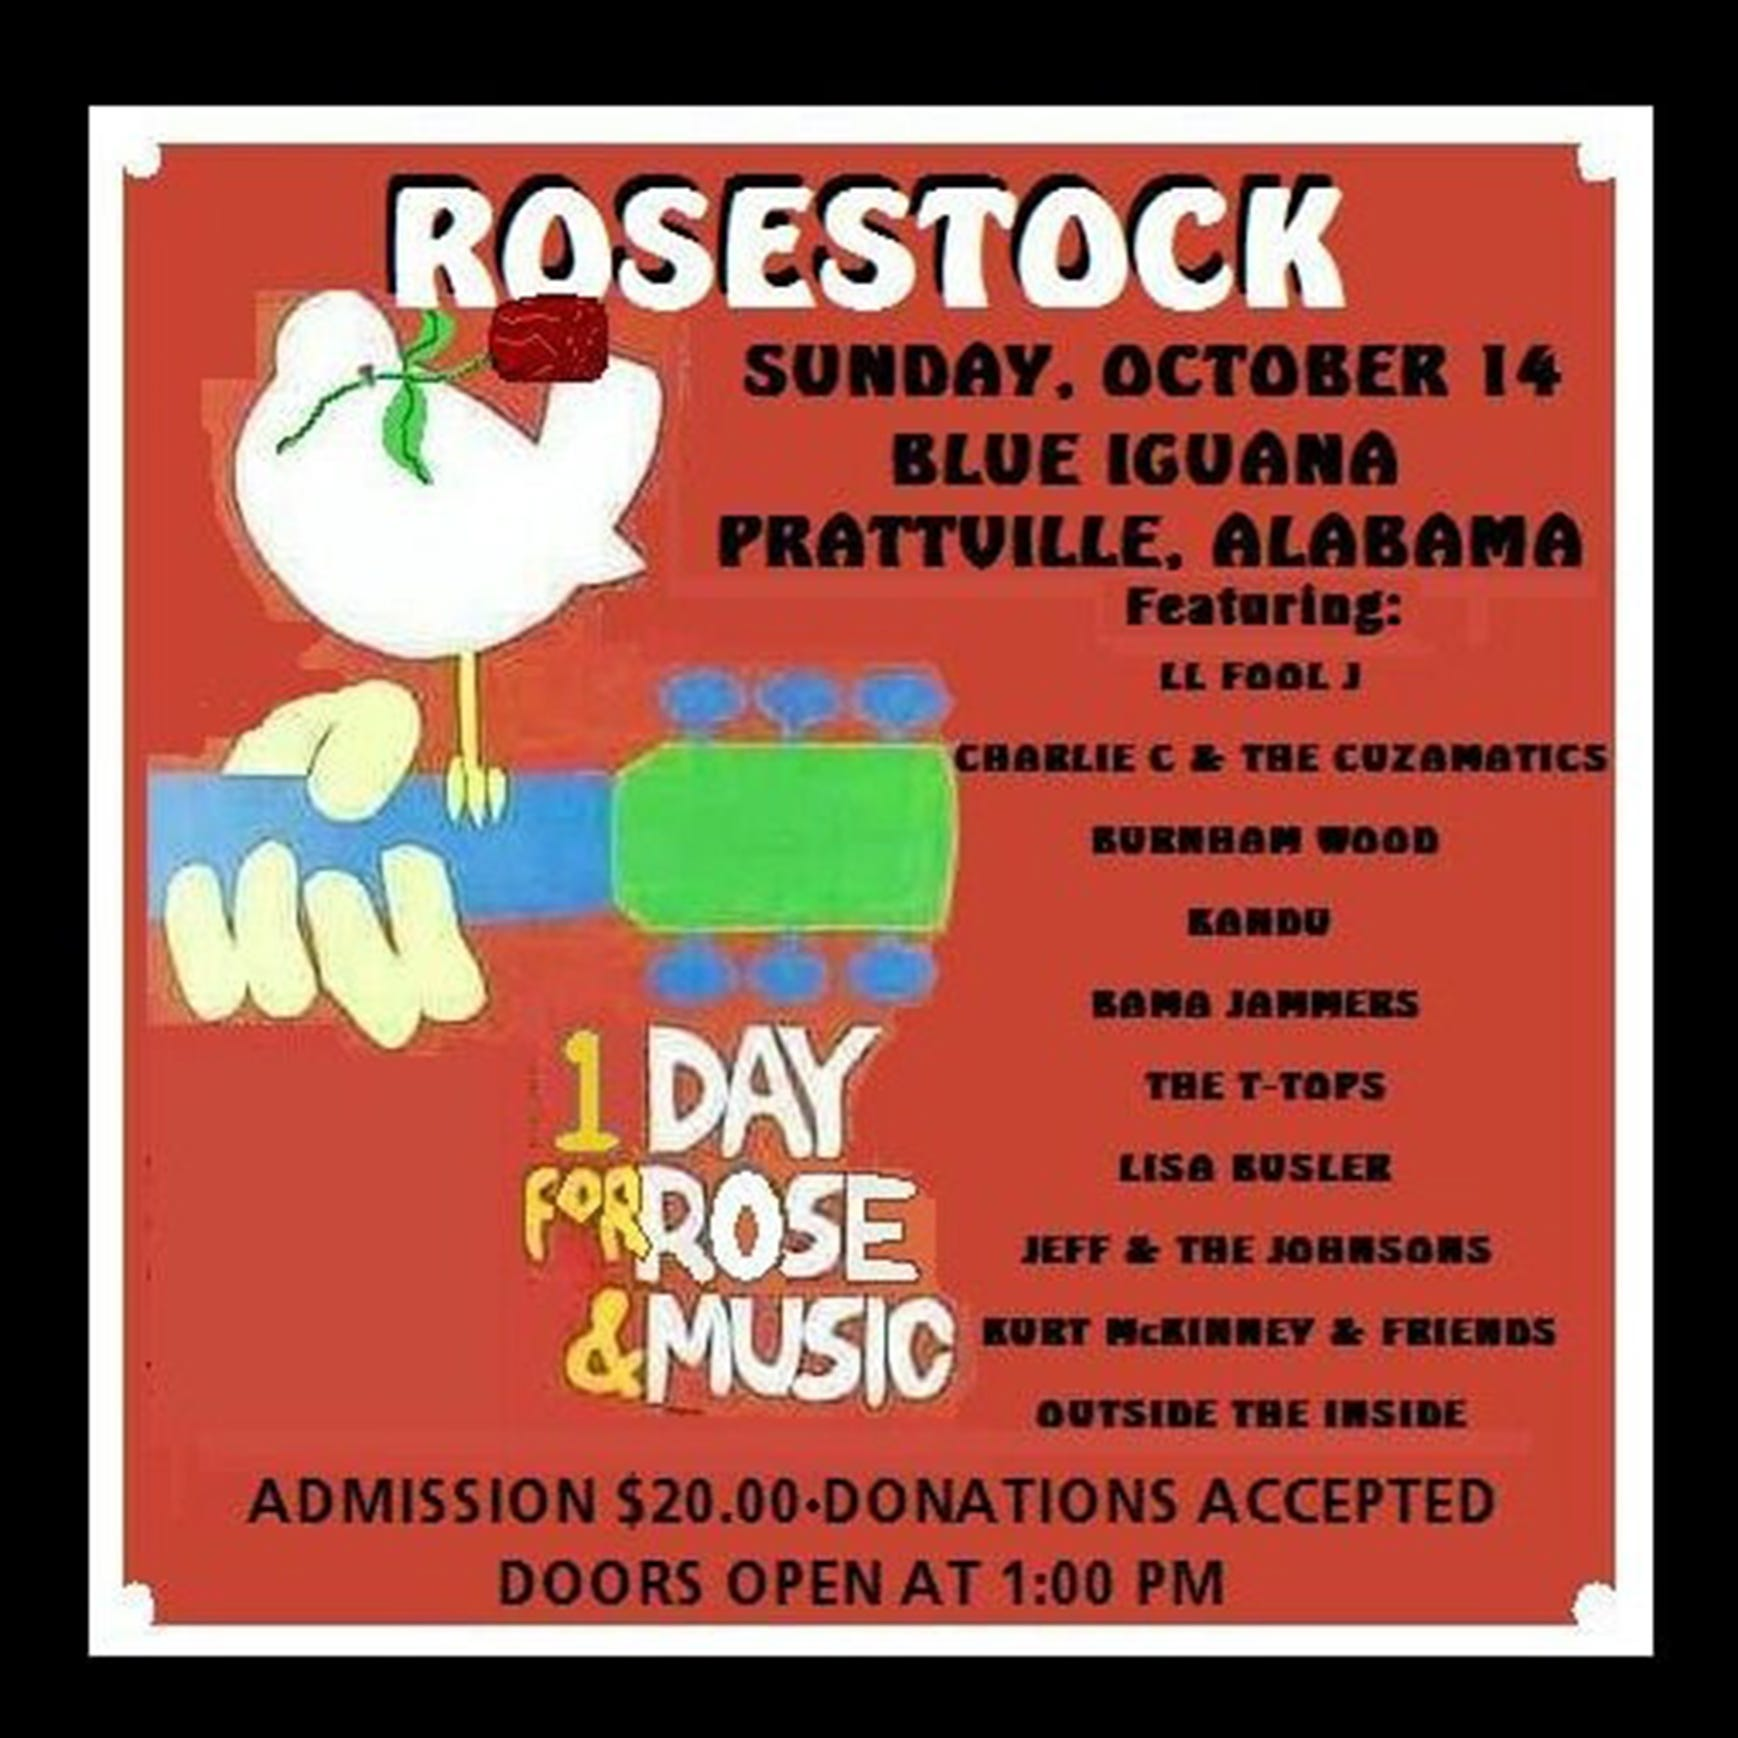 Rosestock benefit concert Sunday at Blue Iguana